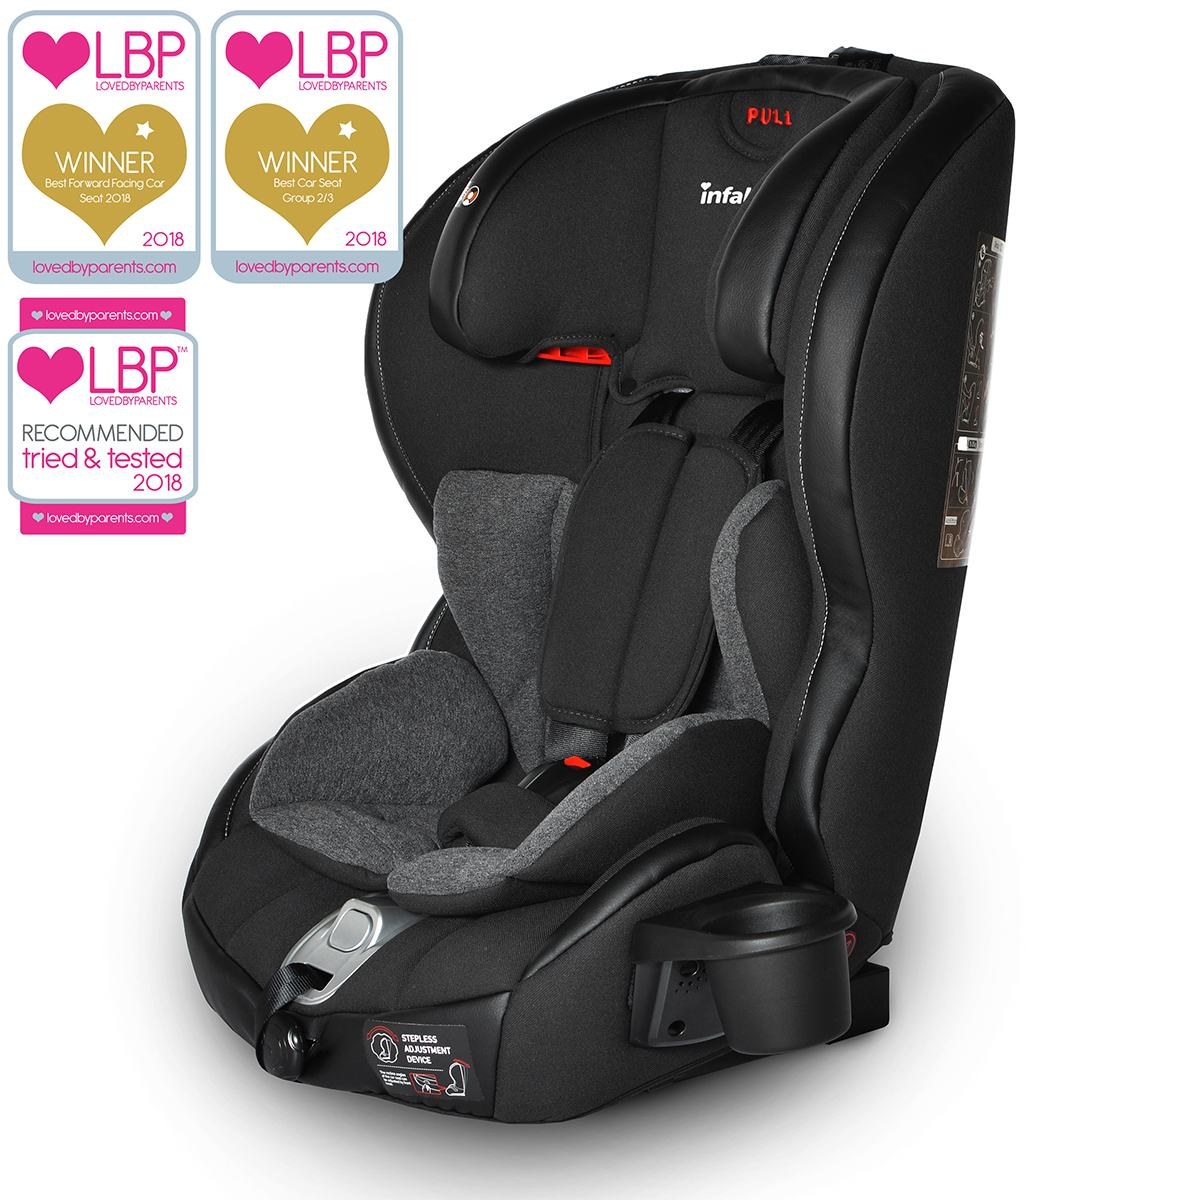 Infant Seat Vs Safety Seat Infababy Safe Plus Isofix Car Seat Group 123 Graphite